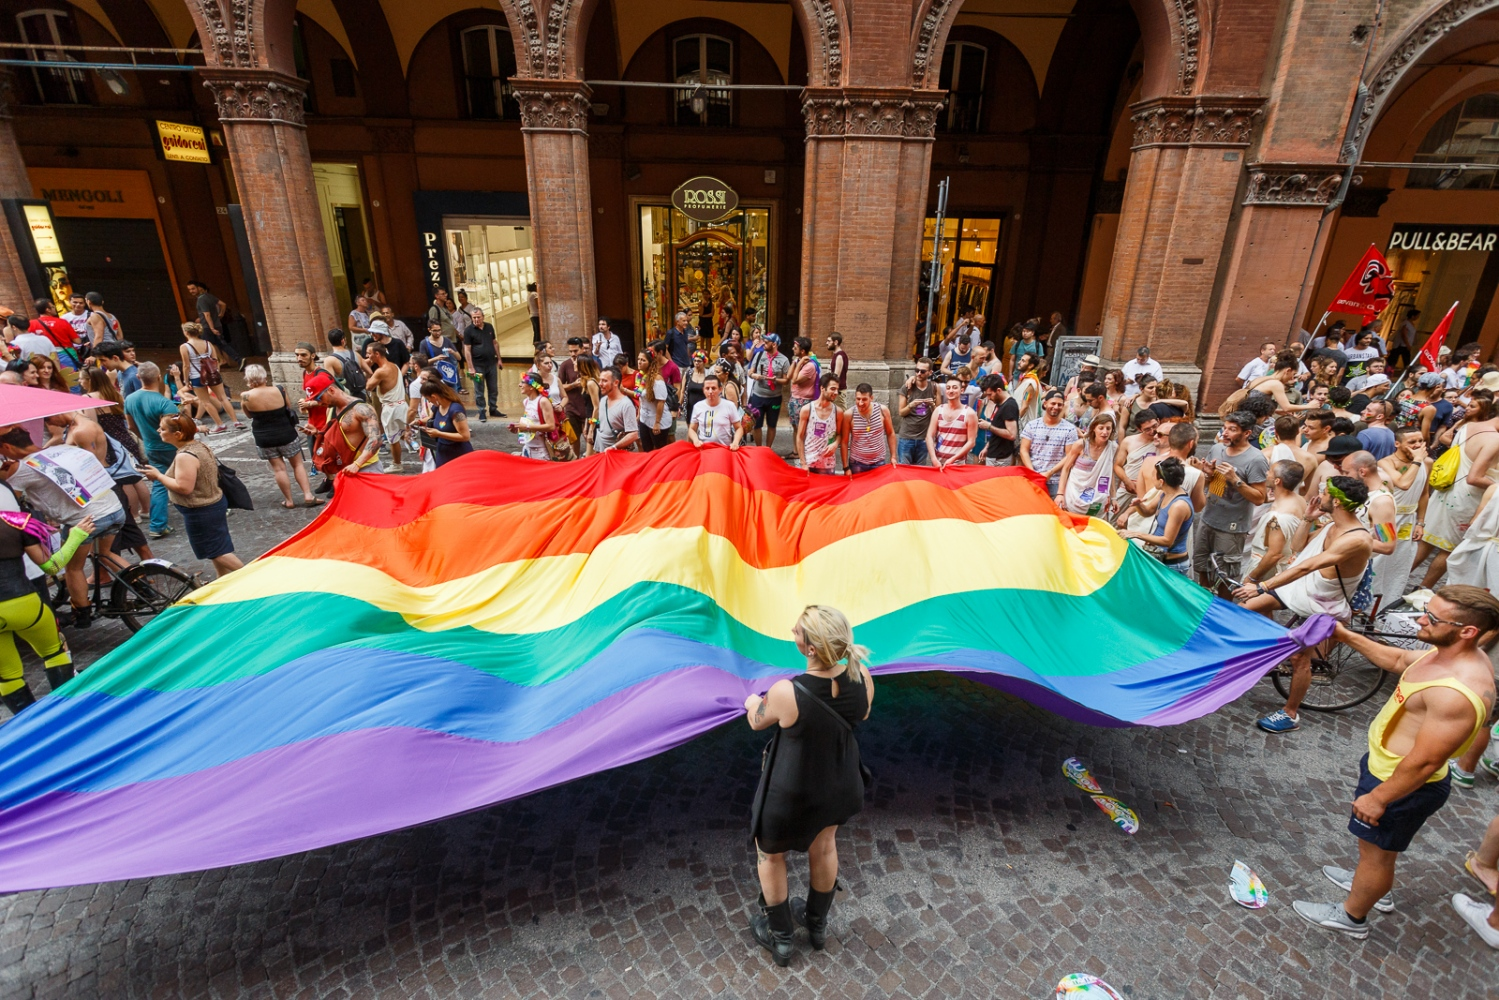 The LGBT Pride in Bologna Marchers walk with a giant rainbow flag as the LGBT community celebrates Pride in Bologna on June 25, 2016 in Bologna, Italy. The parade is part of a World Pride Week and attracted thousands of marchers fighting for gay rights. 2016 Pride comes just two weeks after Omar Mateen shot dead 50 people at Pulse, a gay nightclub in Orlando, Florida.